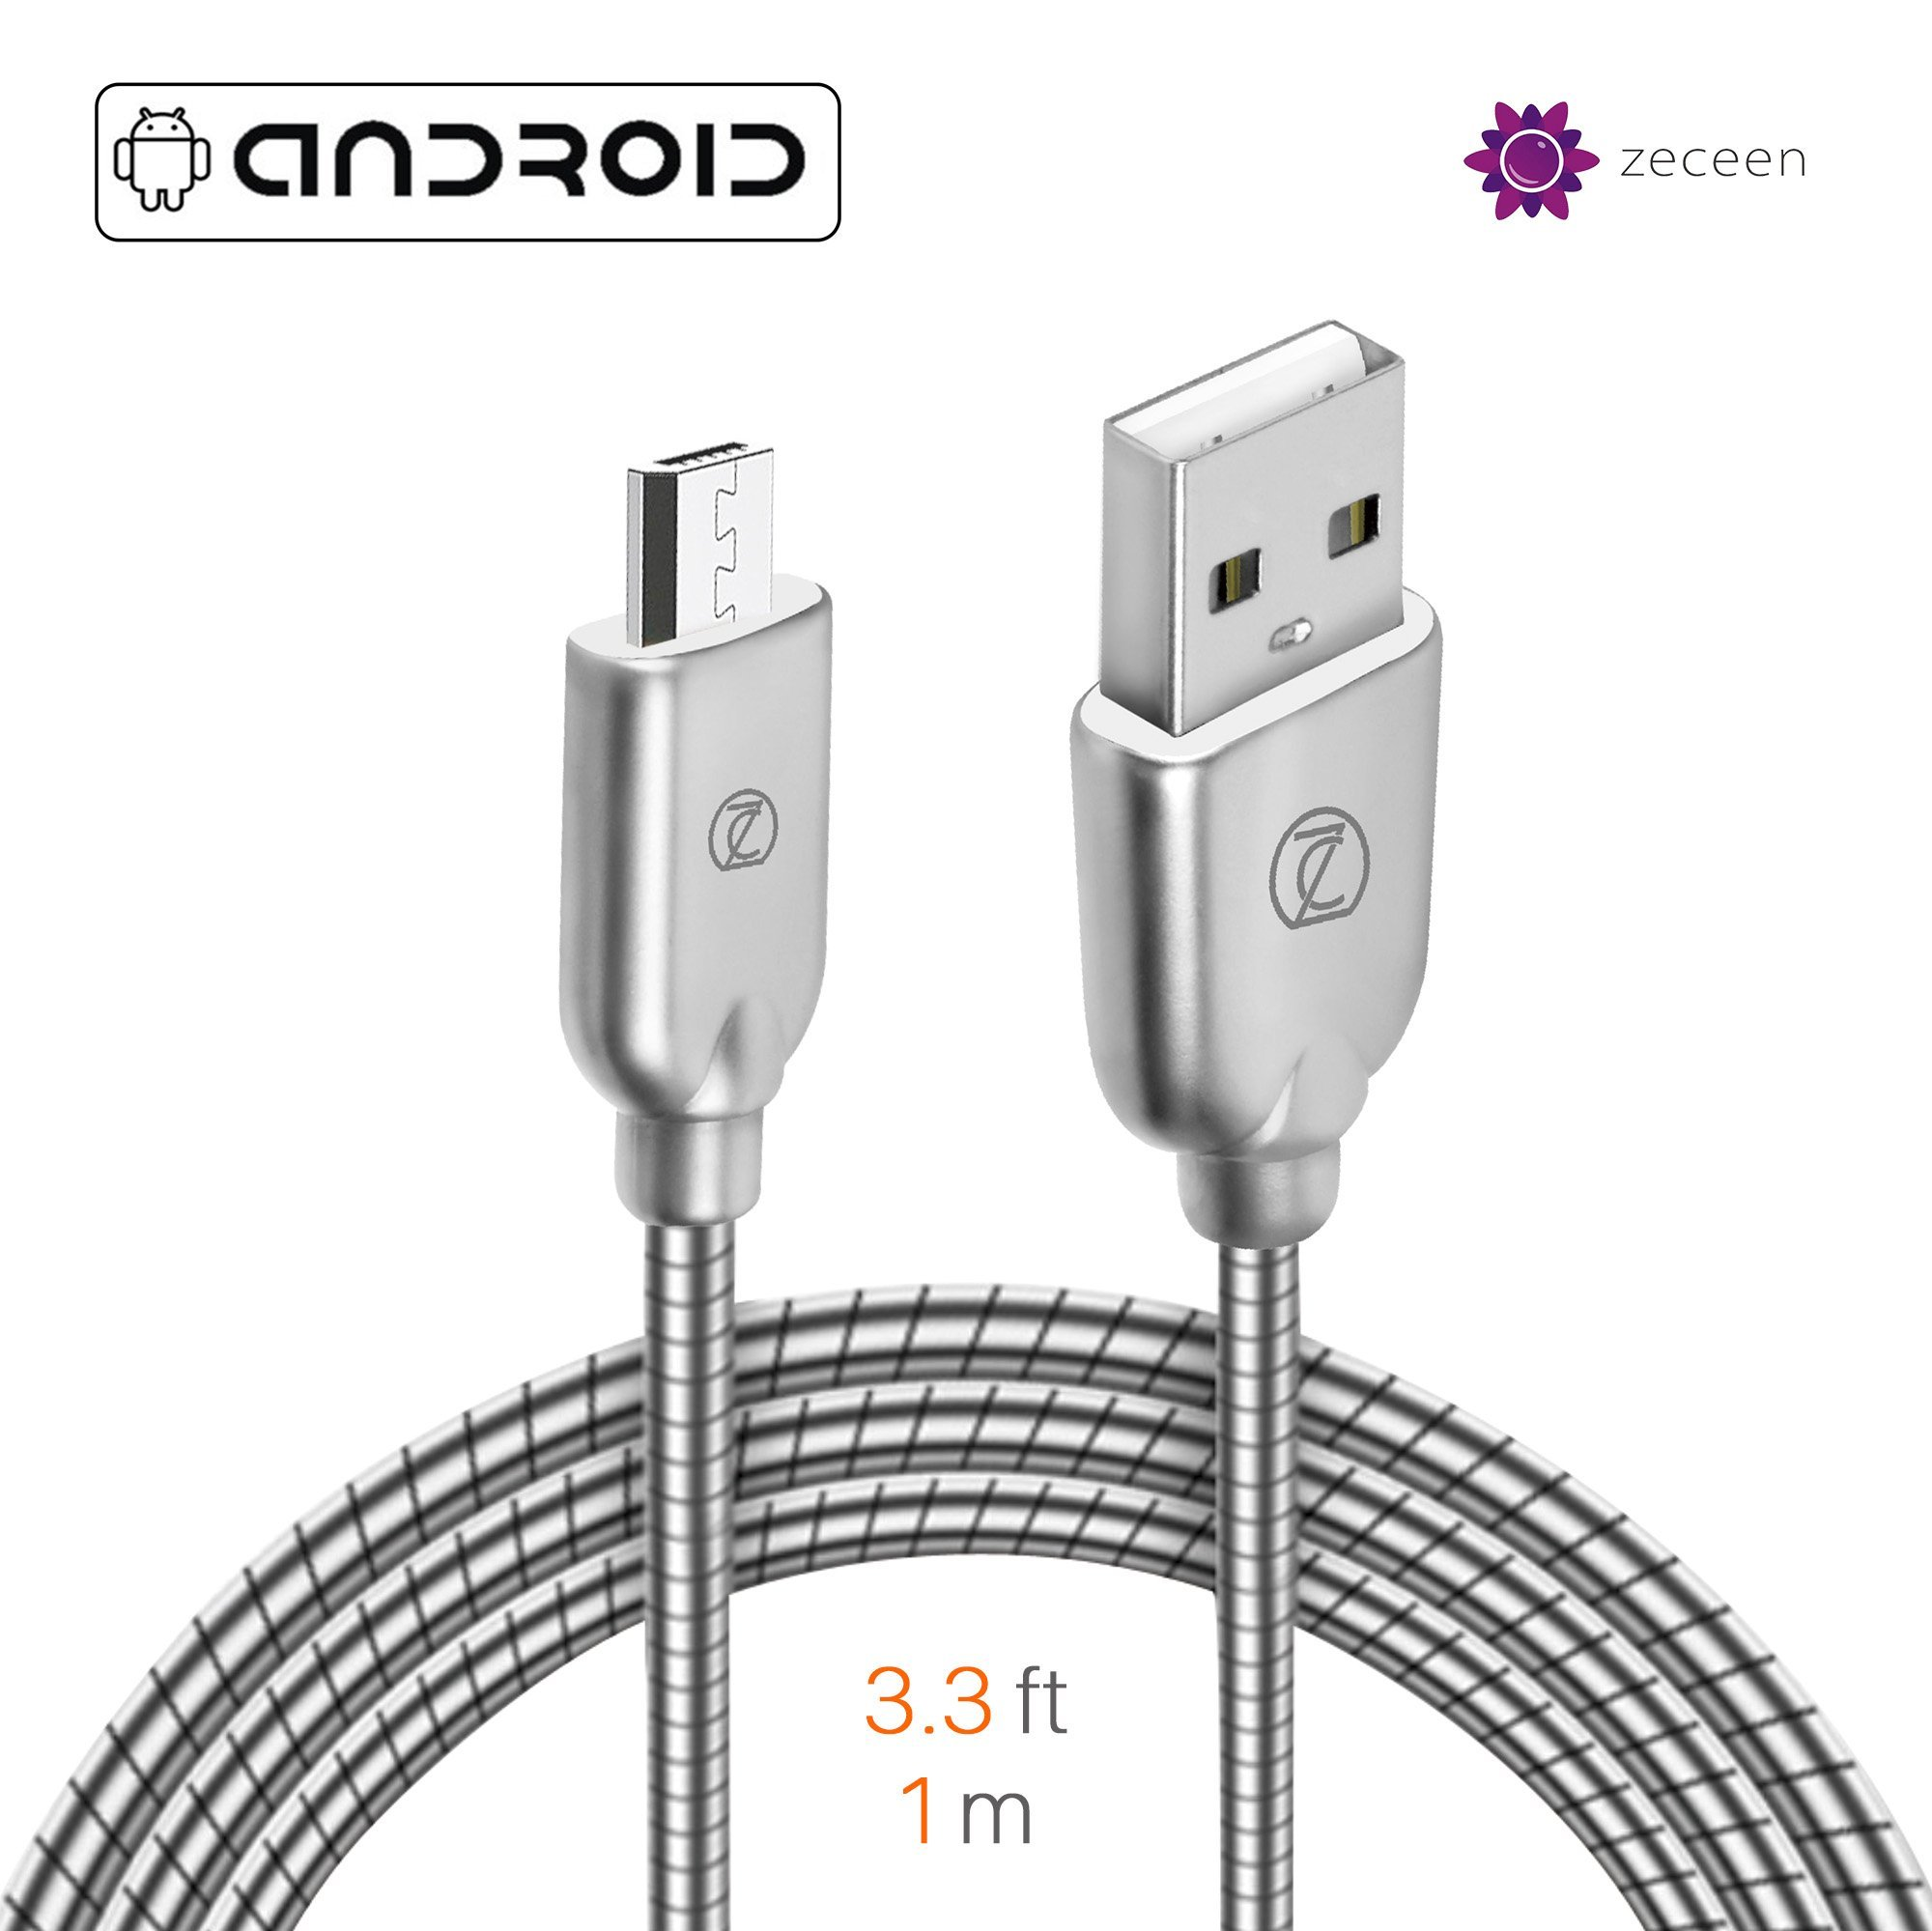 ZECEEN Metal Micro USB Cable – Fast Charging & Data Transfer Cord (3.3 ft) – Almost Unbreakable – Bending & Weather Resistant – Wide Compatibility with Android, Windows and other Devices